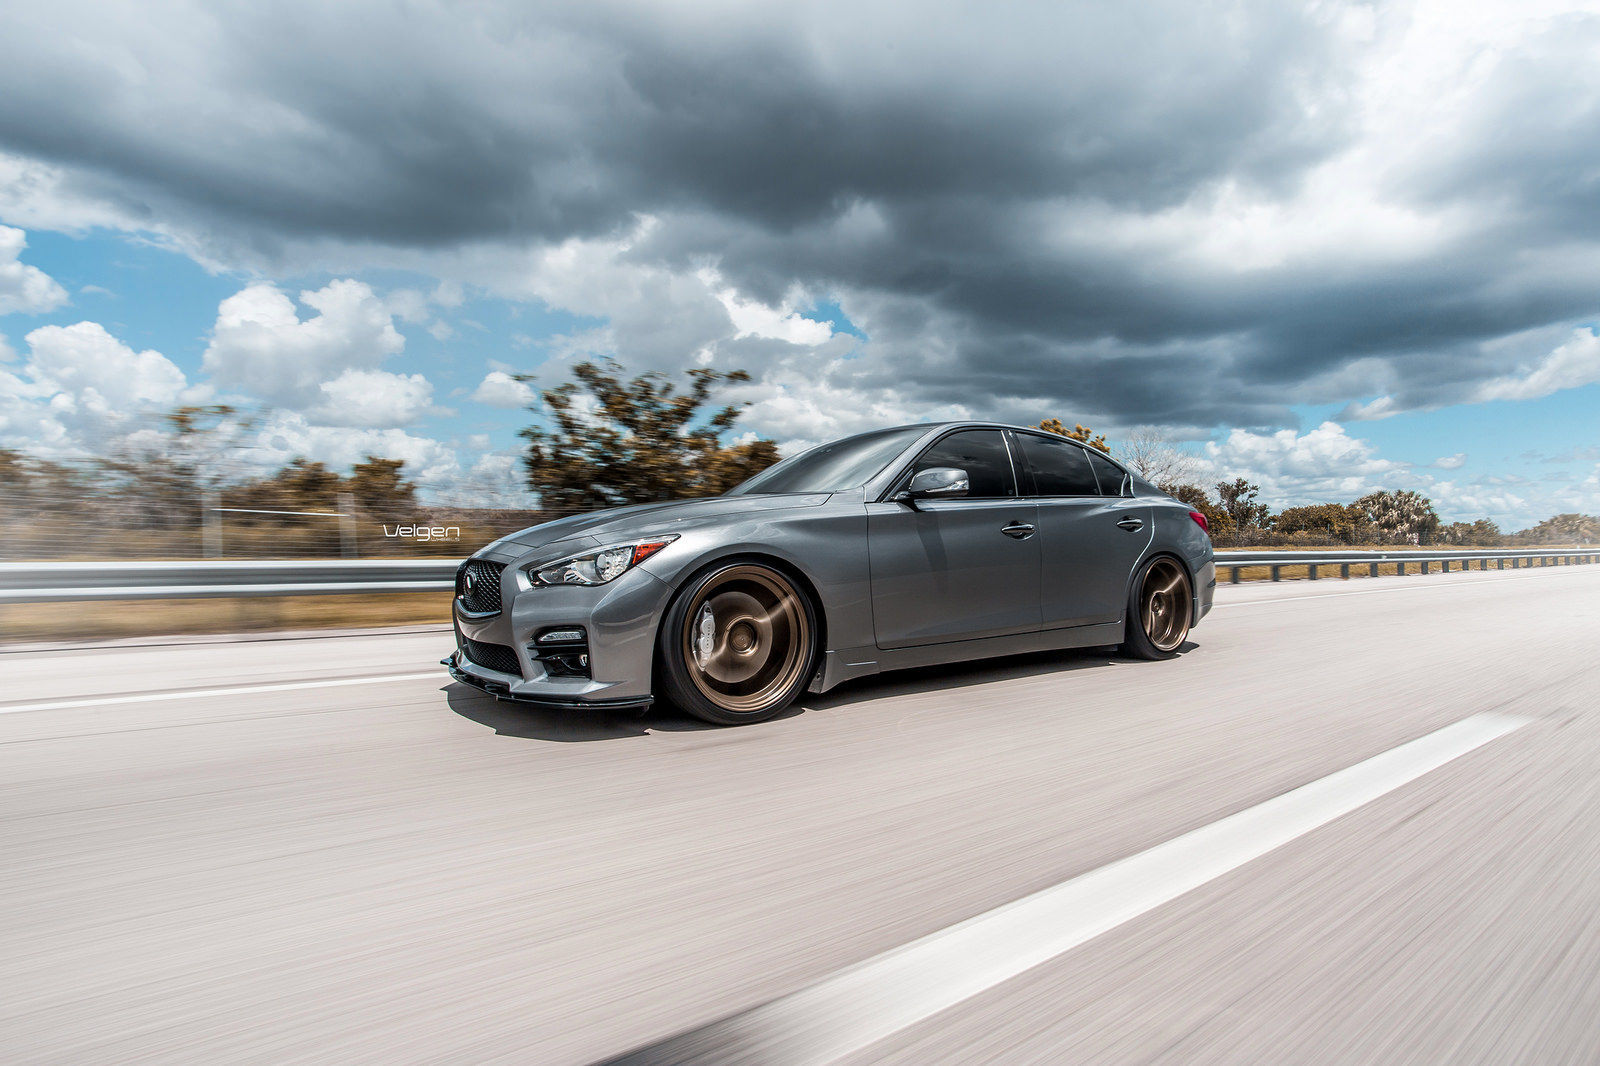 2015 Infiniti Q50 | Infiniti Q50s on Velgen Wheels Classic5